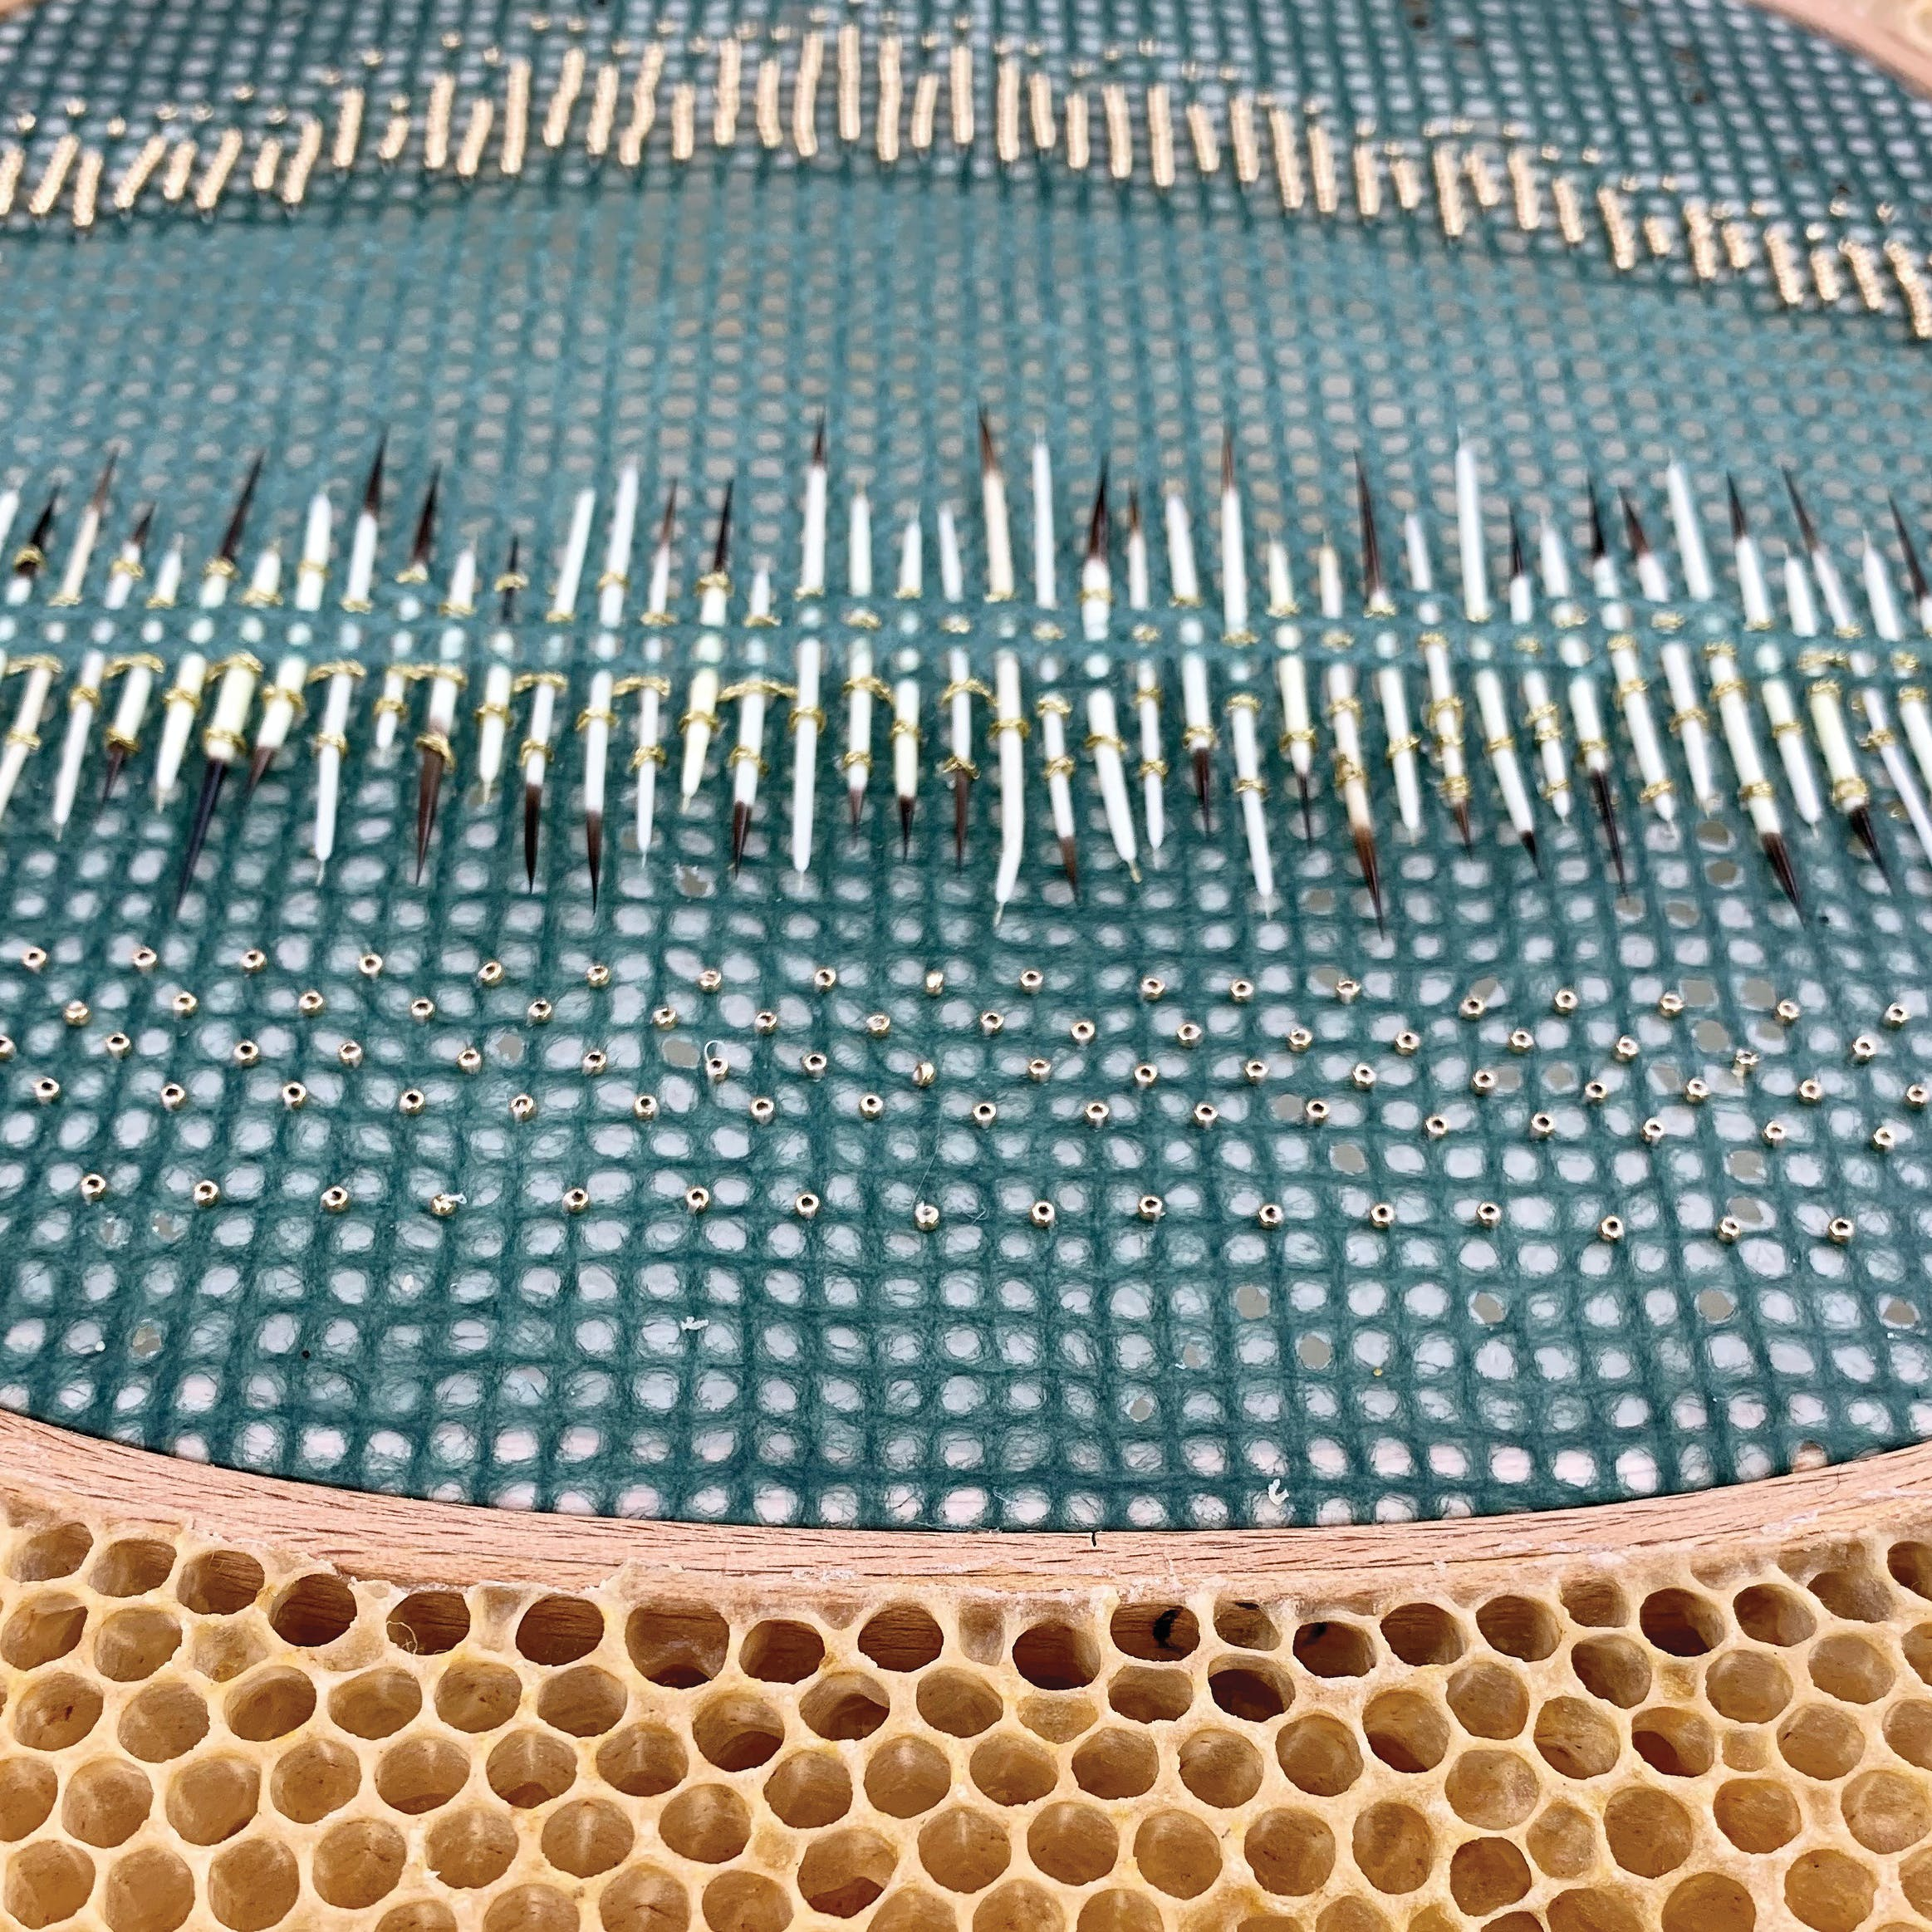 Embroidery hoop with blue fiber and beads embedded in honeycomb with bees